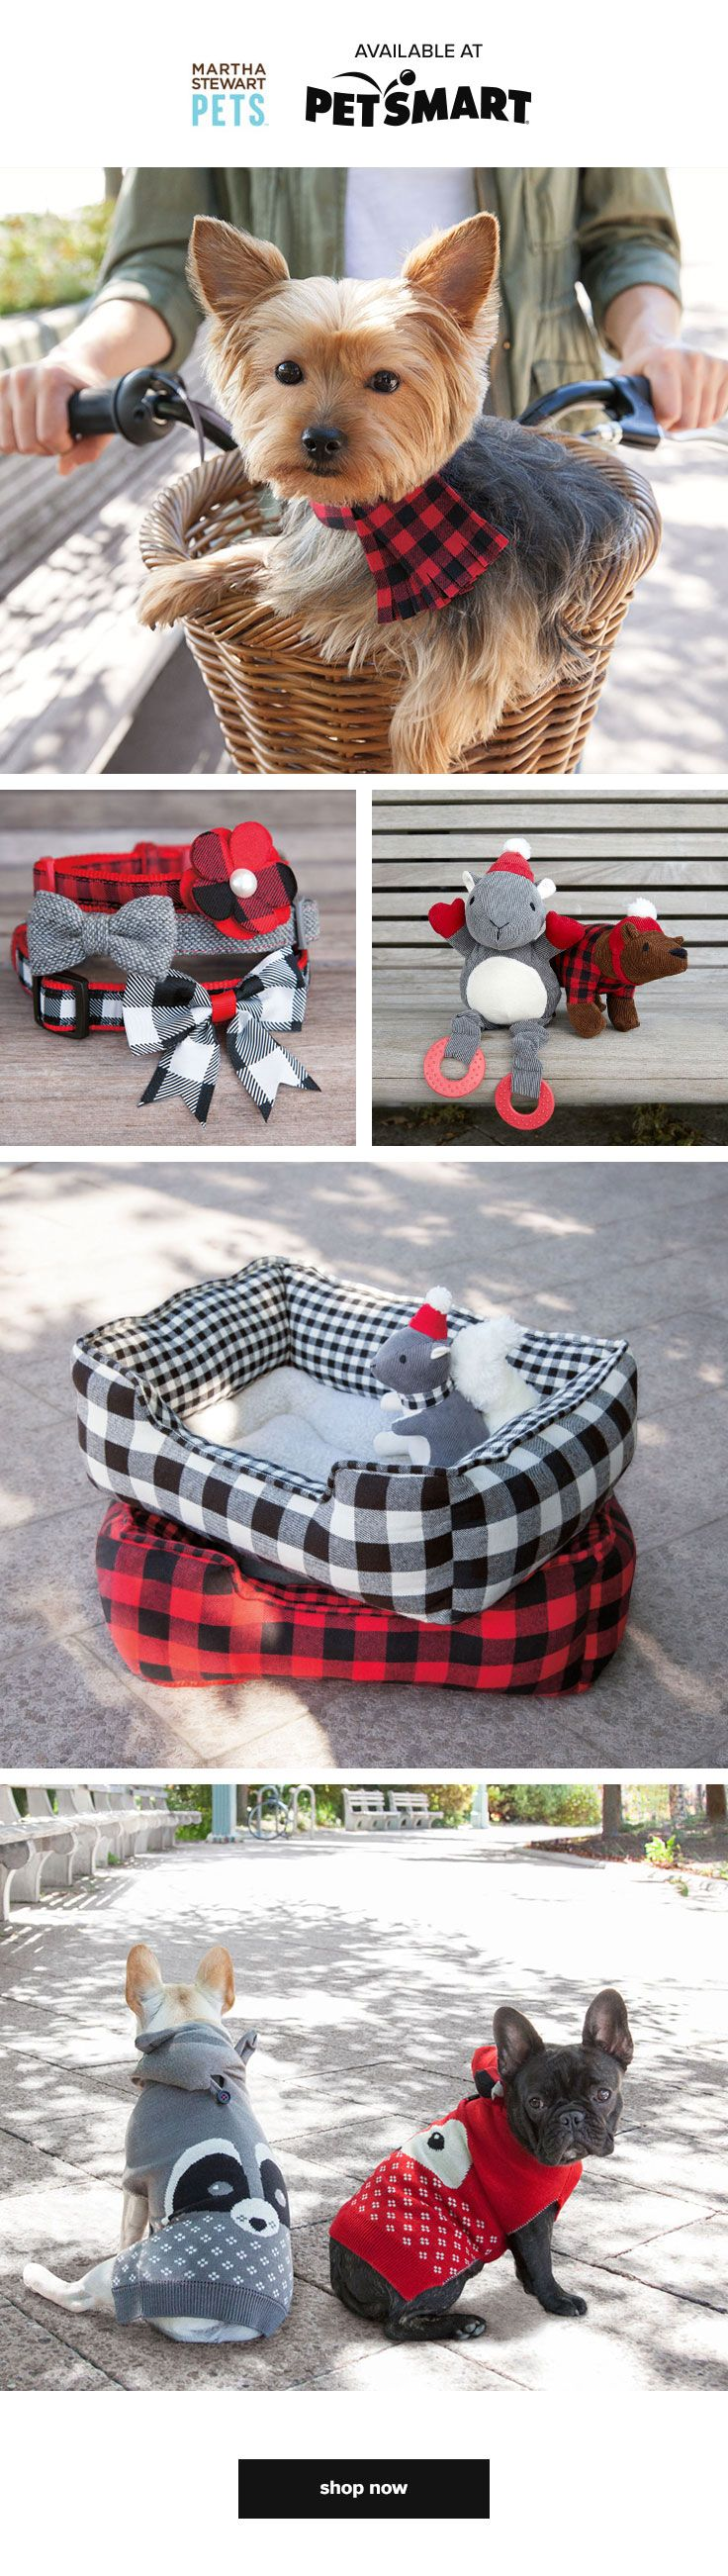 Get your pet in the fall spirit. Shop Martha Stewart Pets collars, toys, beds and dog apparel, available only at PetSmart!